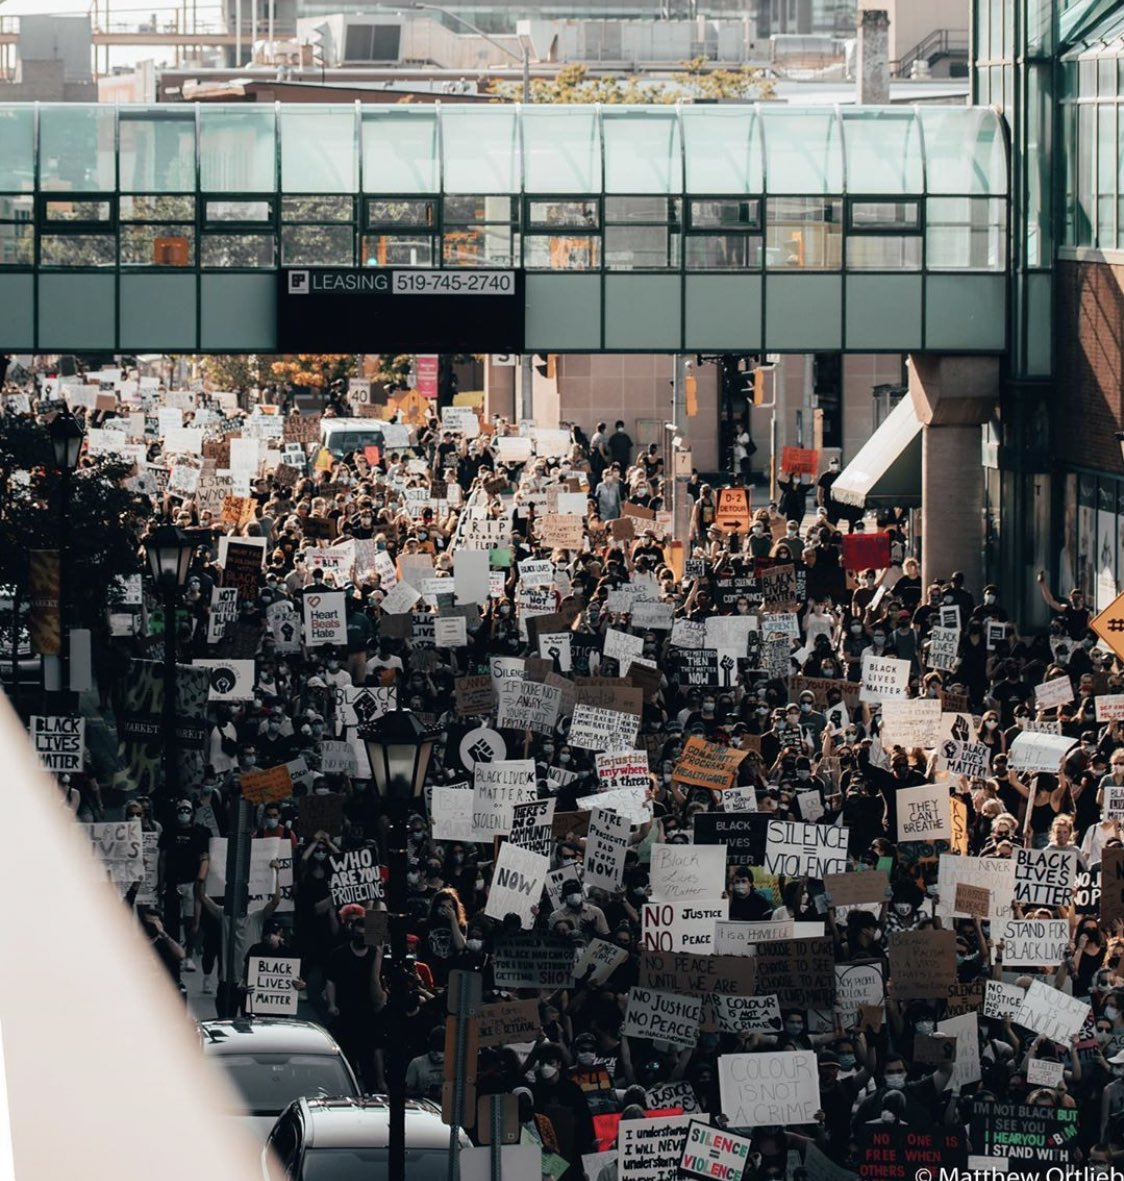 Proud of our community! 🖤🤍 ✊🏿✊🏾✊🏽✊🏼✊🏻✊  #BlackLivesMatter  —— KW you showed up! #kwawesome   📸 Matthew Ortlieb  @NBLCanada @CityKitchener @citywaterloo @shaunking https://t.co/H0vgLn93Dz